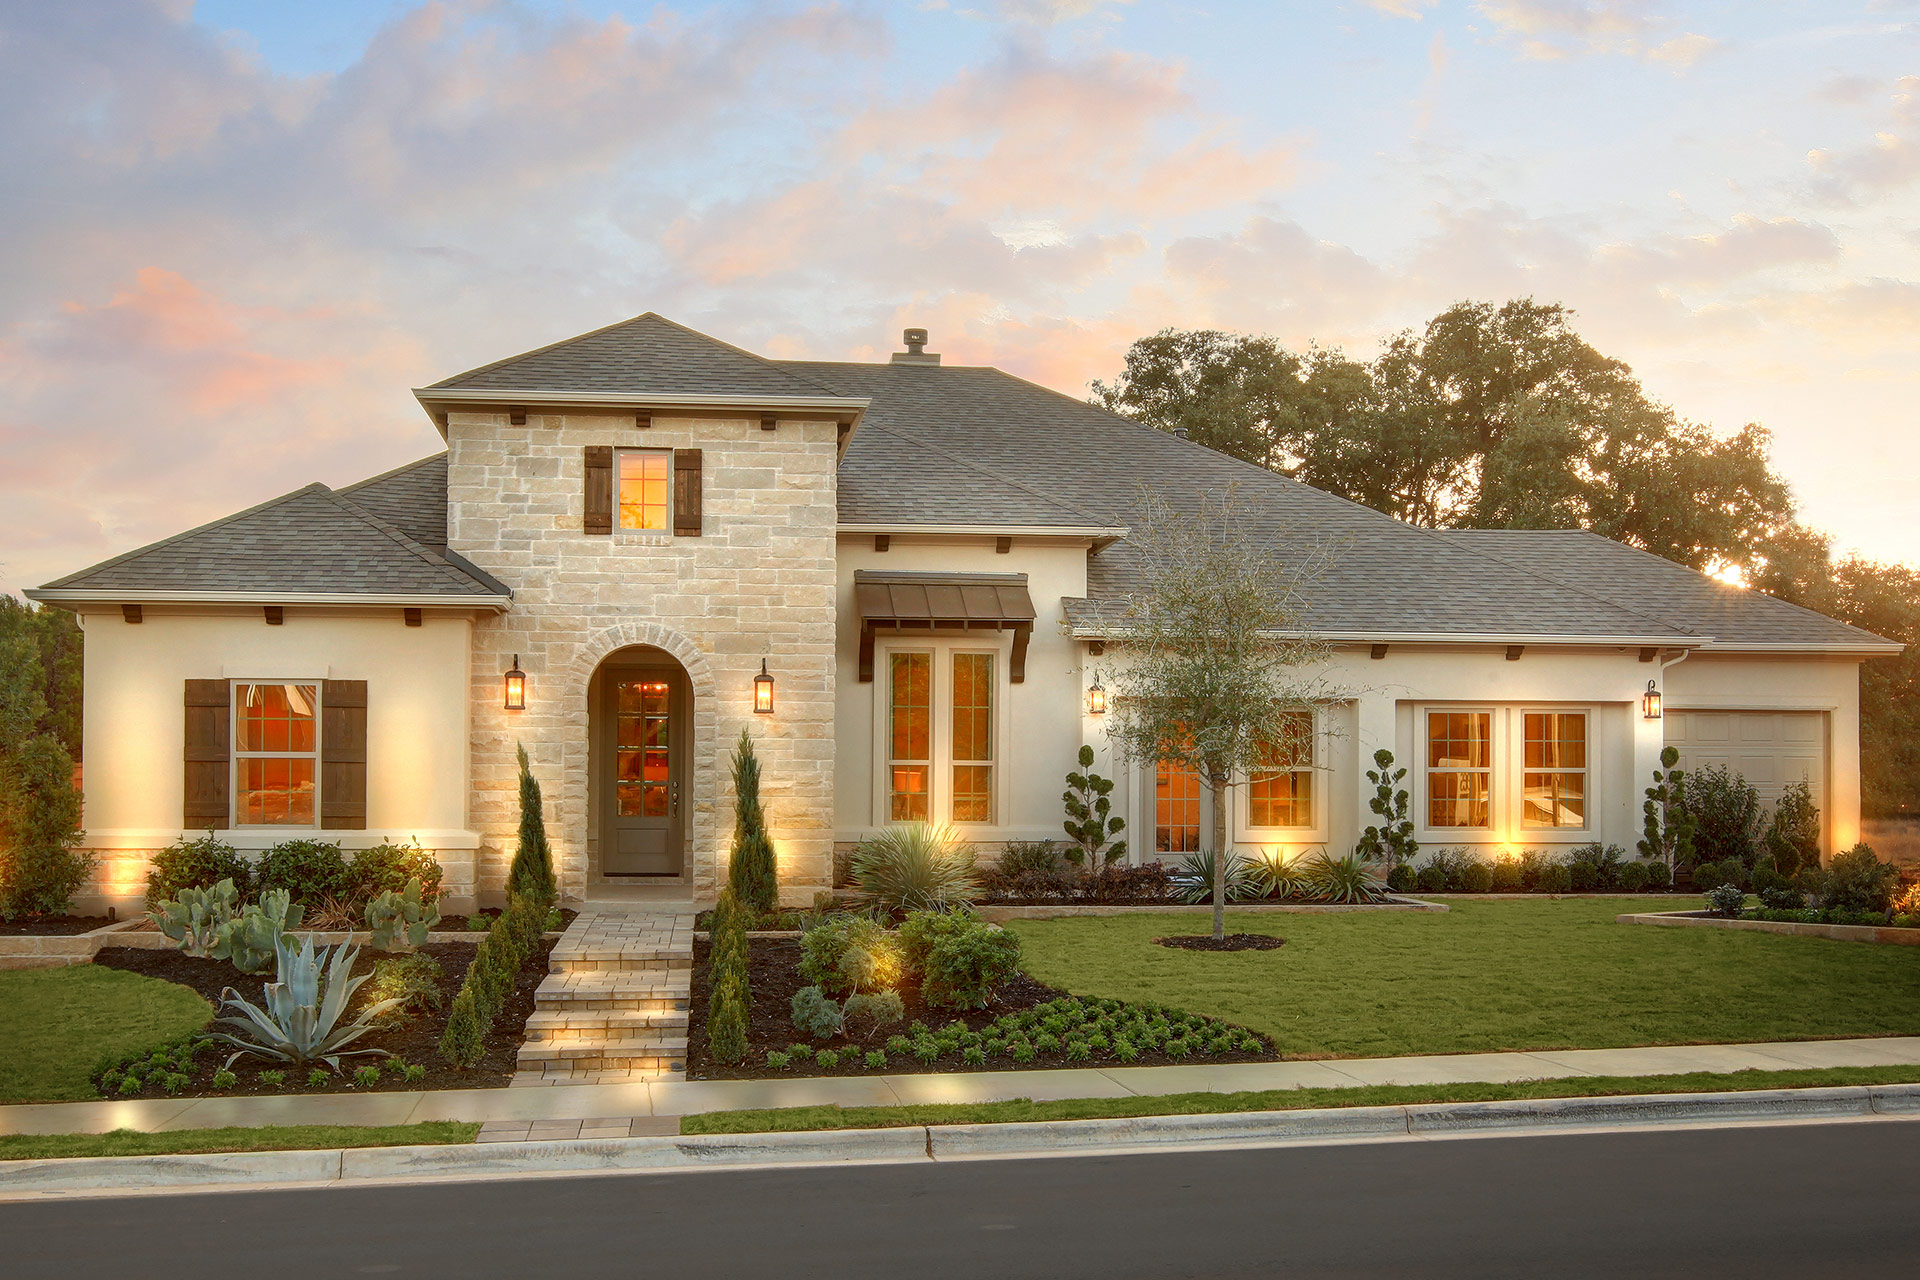 Texas custom home plans home design Custom home plans texas